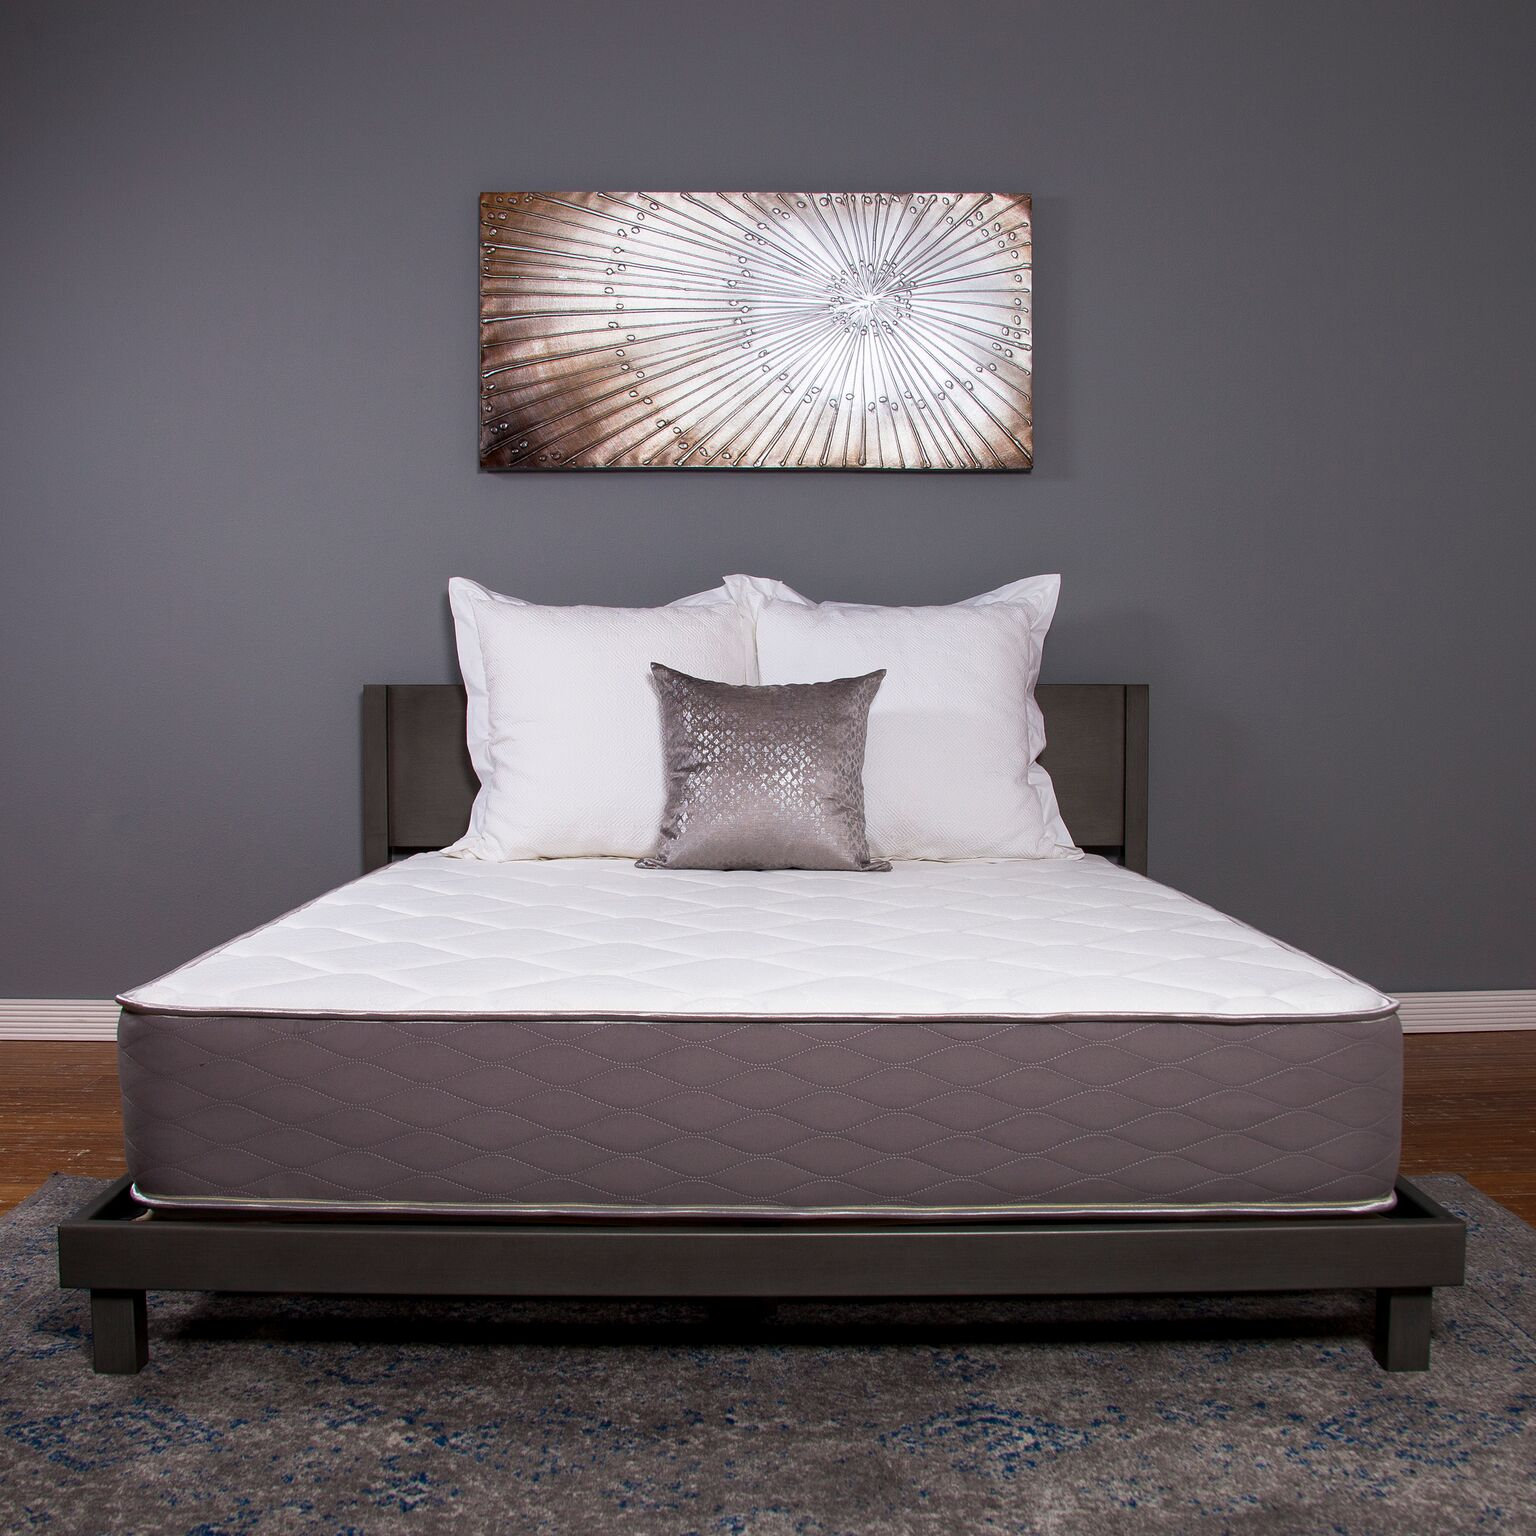 """DreamFoam Dreams 9"""" Two-Sided Medium Firm Pocketed Coil Mattress, Queen by Brooklyn Bedding"""